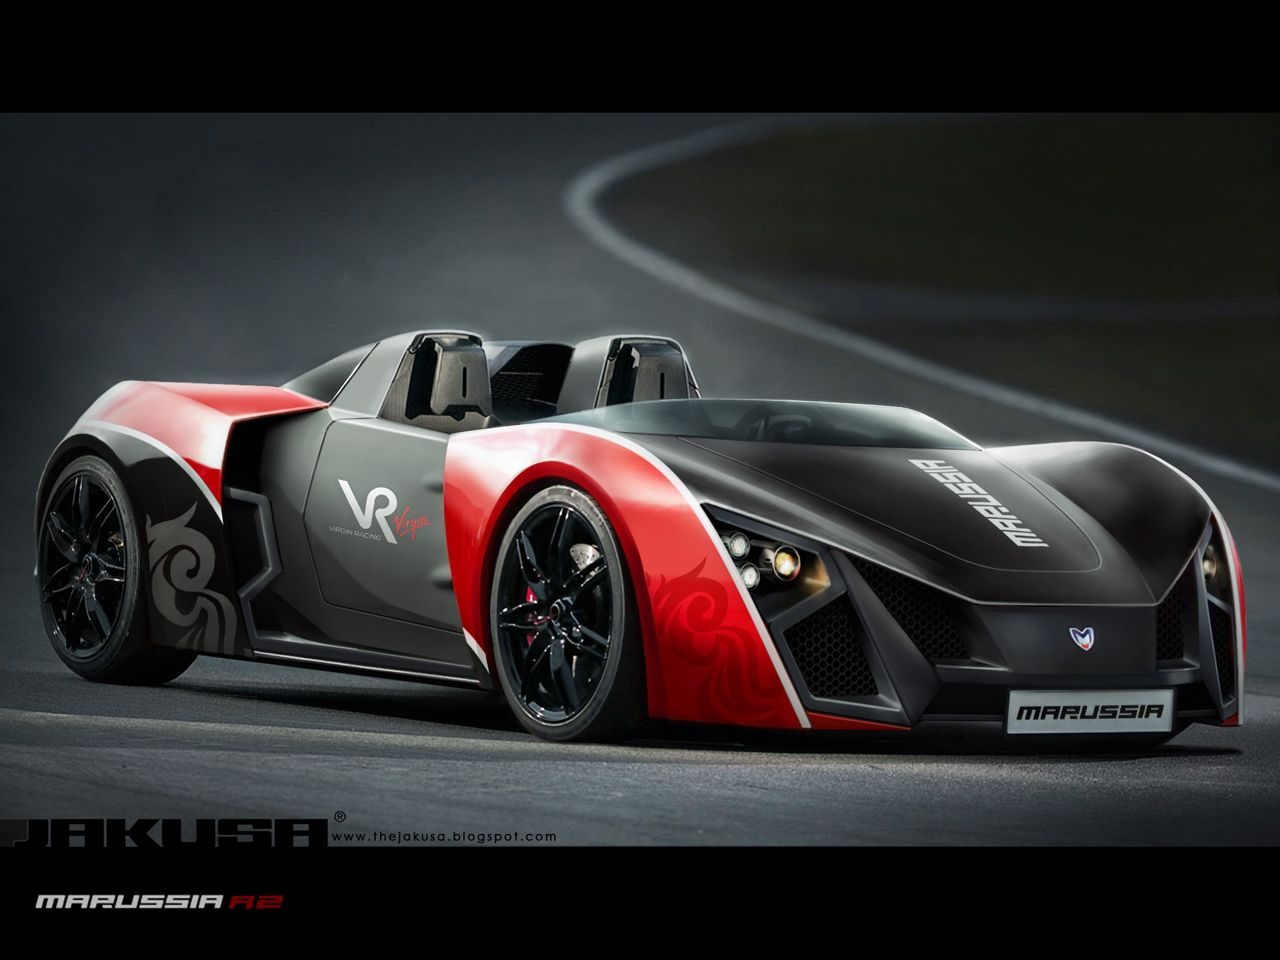 Concept Supercars New Marussia Supercars Marussia B3 Marussia R2 Concept Super Cars Cool Cars Sport Cars